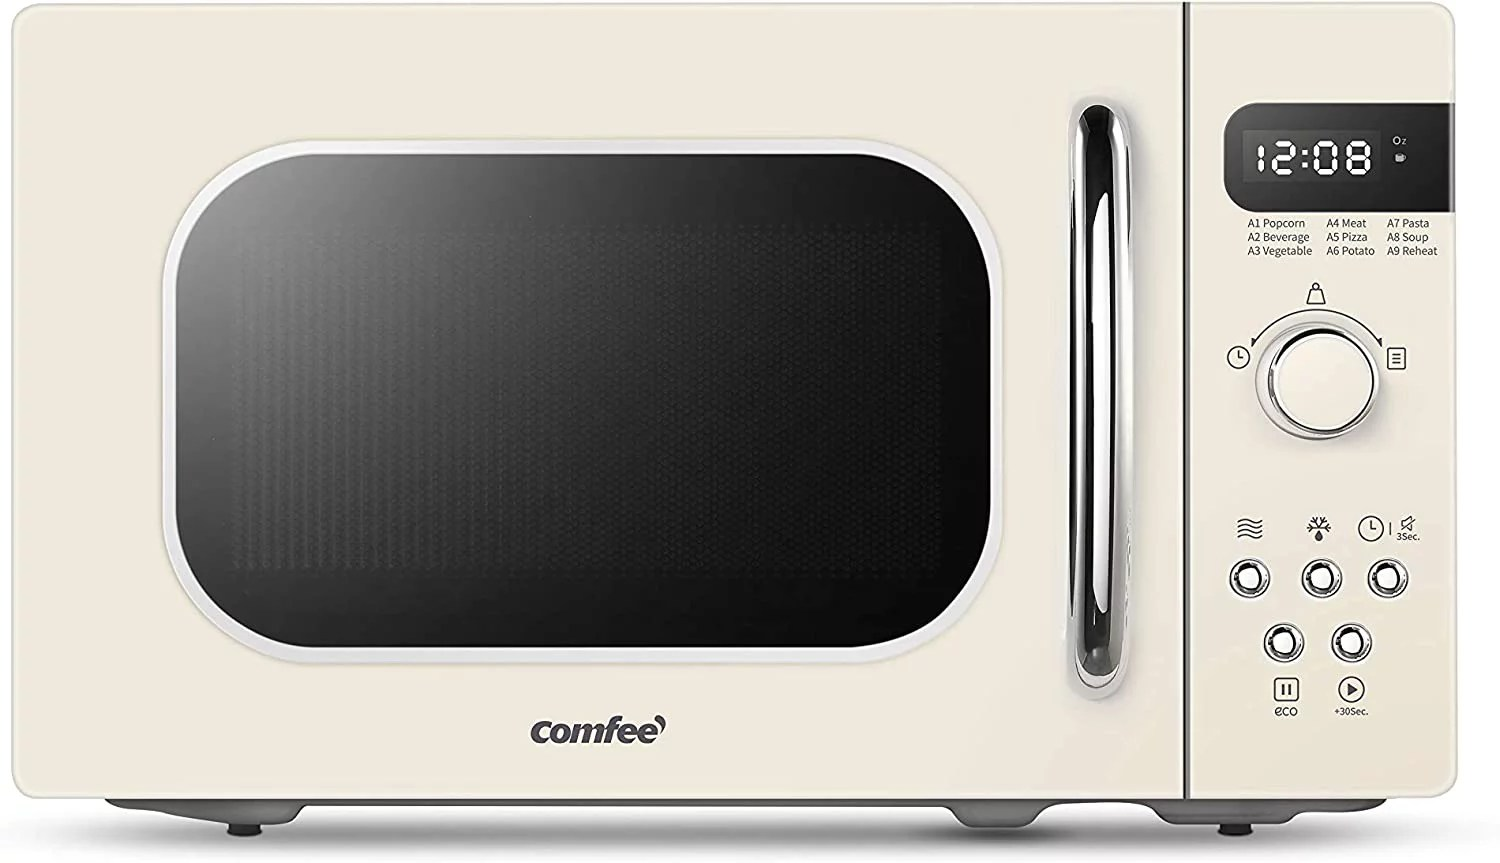 comfee retro countertop microwave oven with compact size position memory turntable sound on off button child safety lock and eco mode